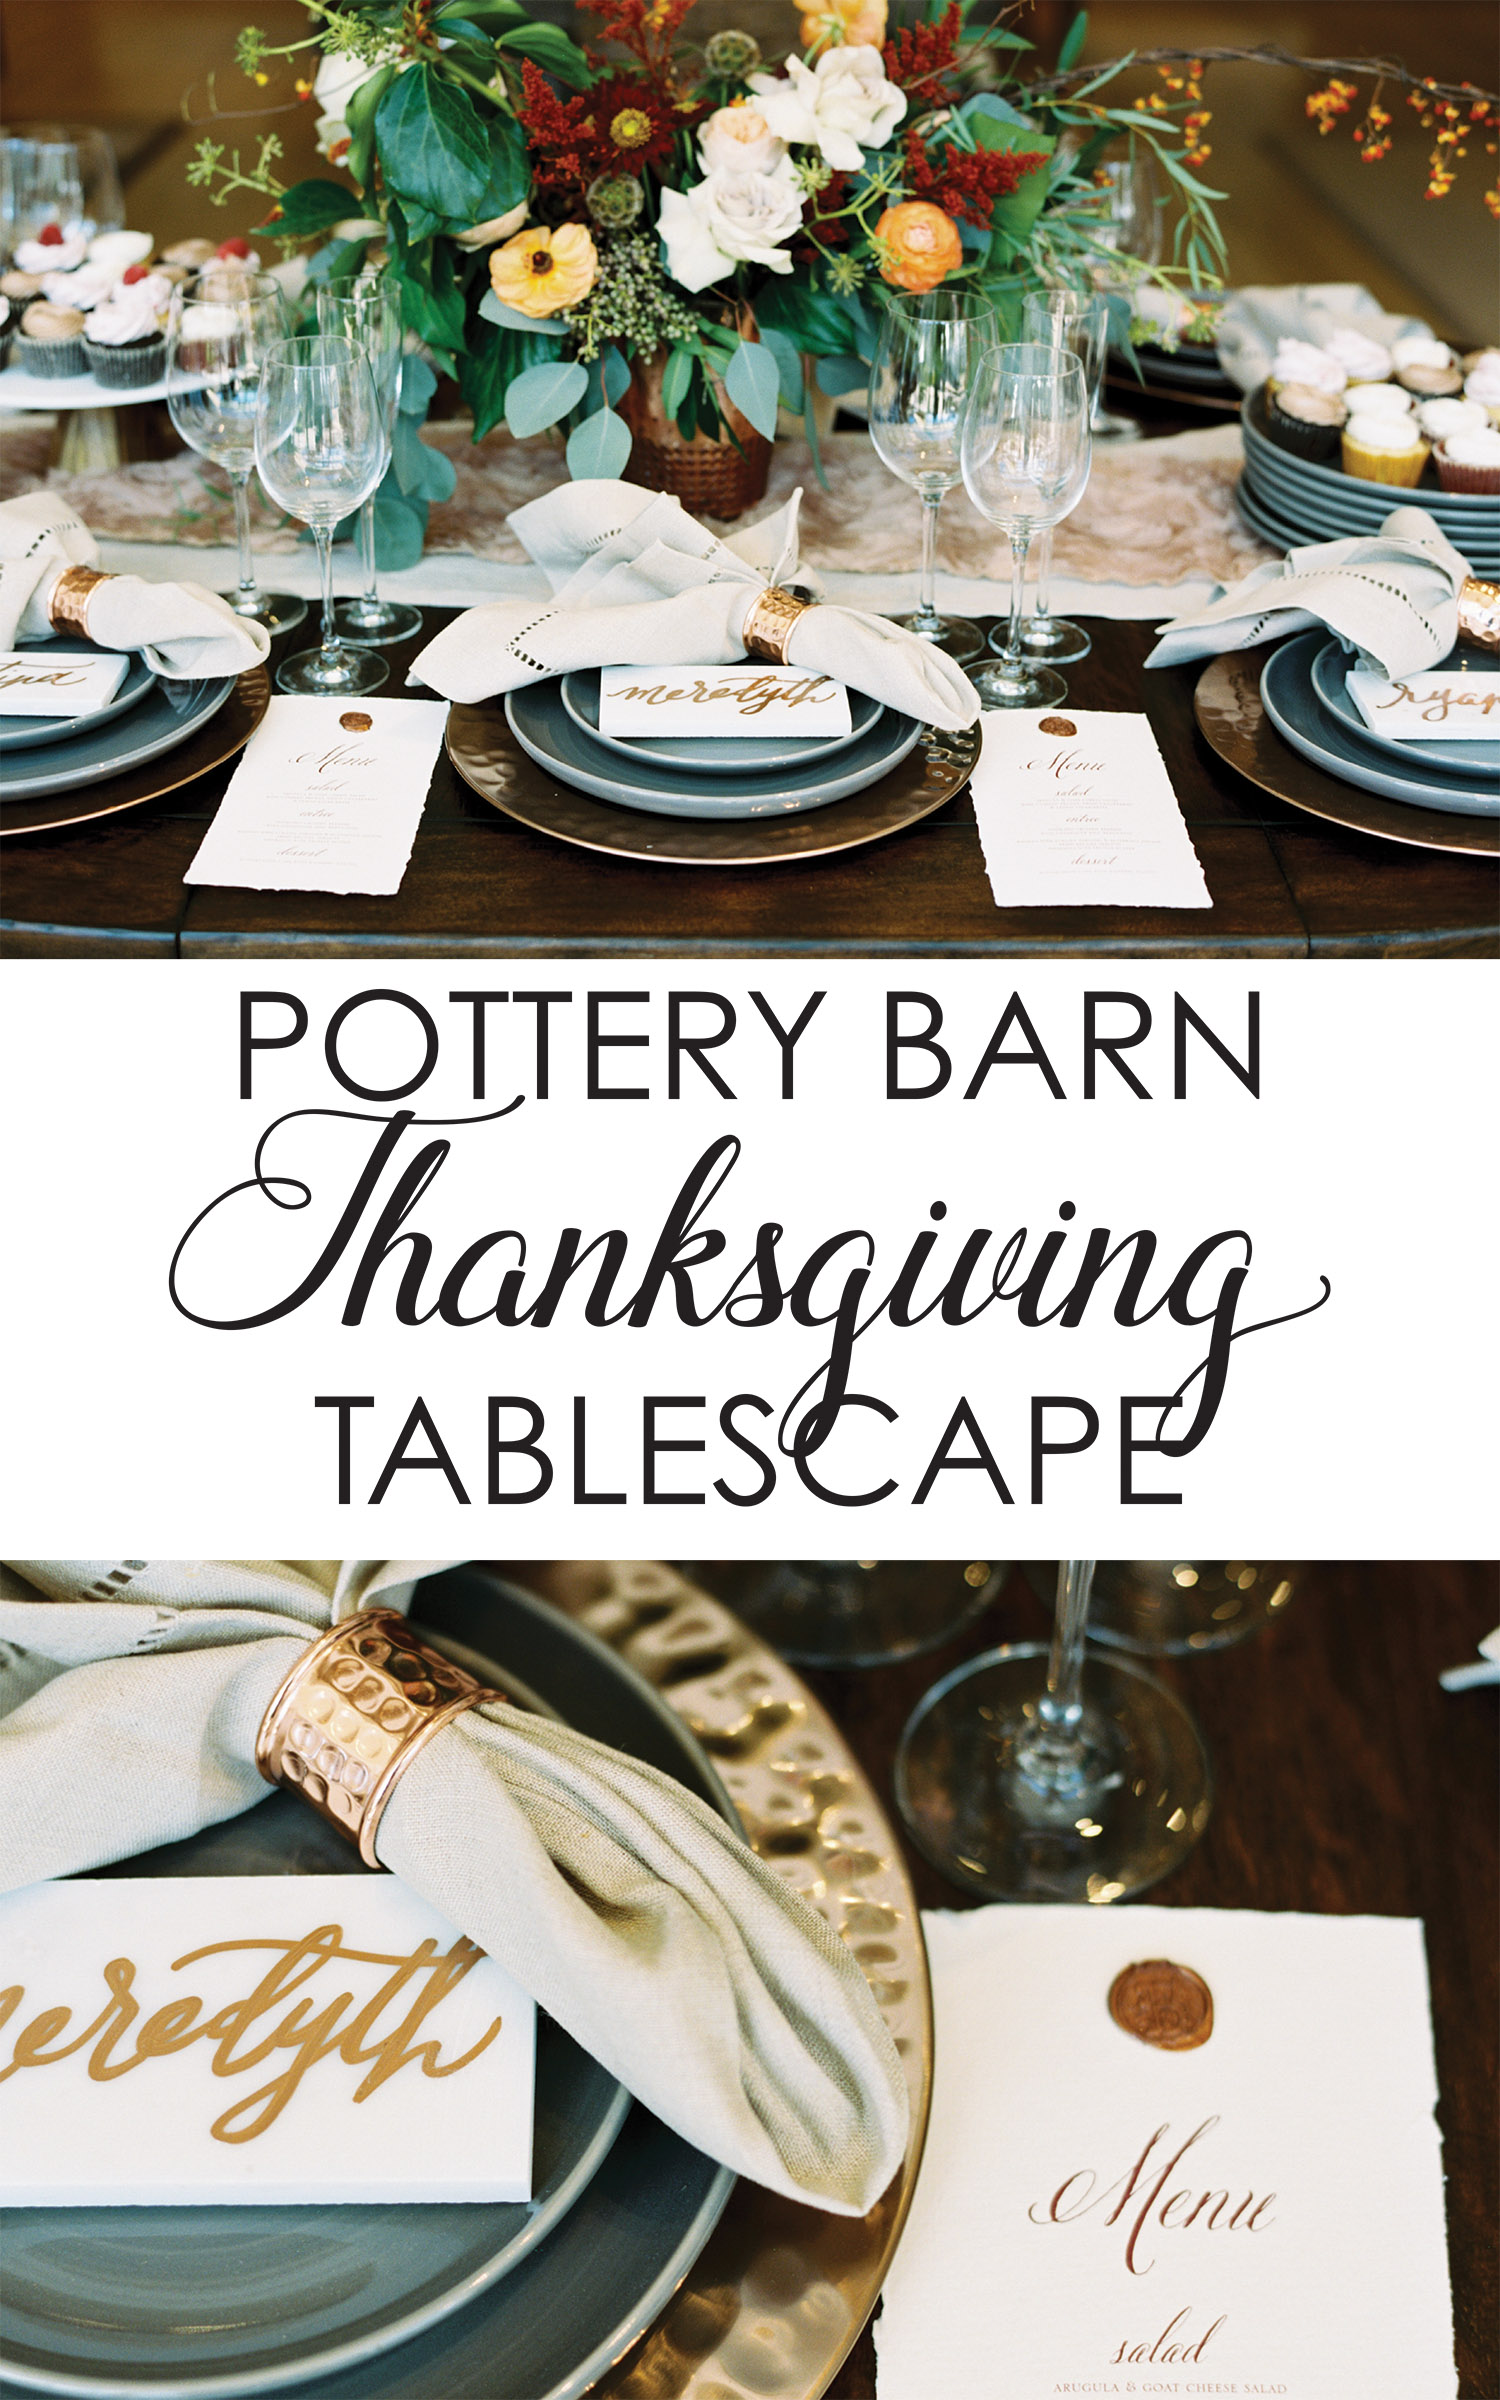 thanksgiving tablescape_pottery barn_pinterest.jpg